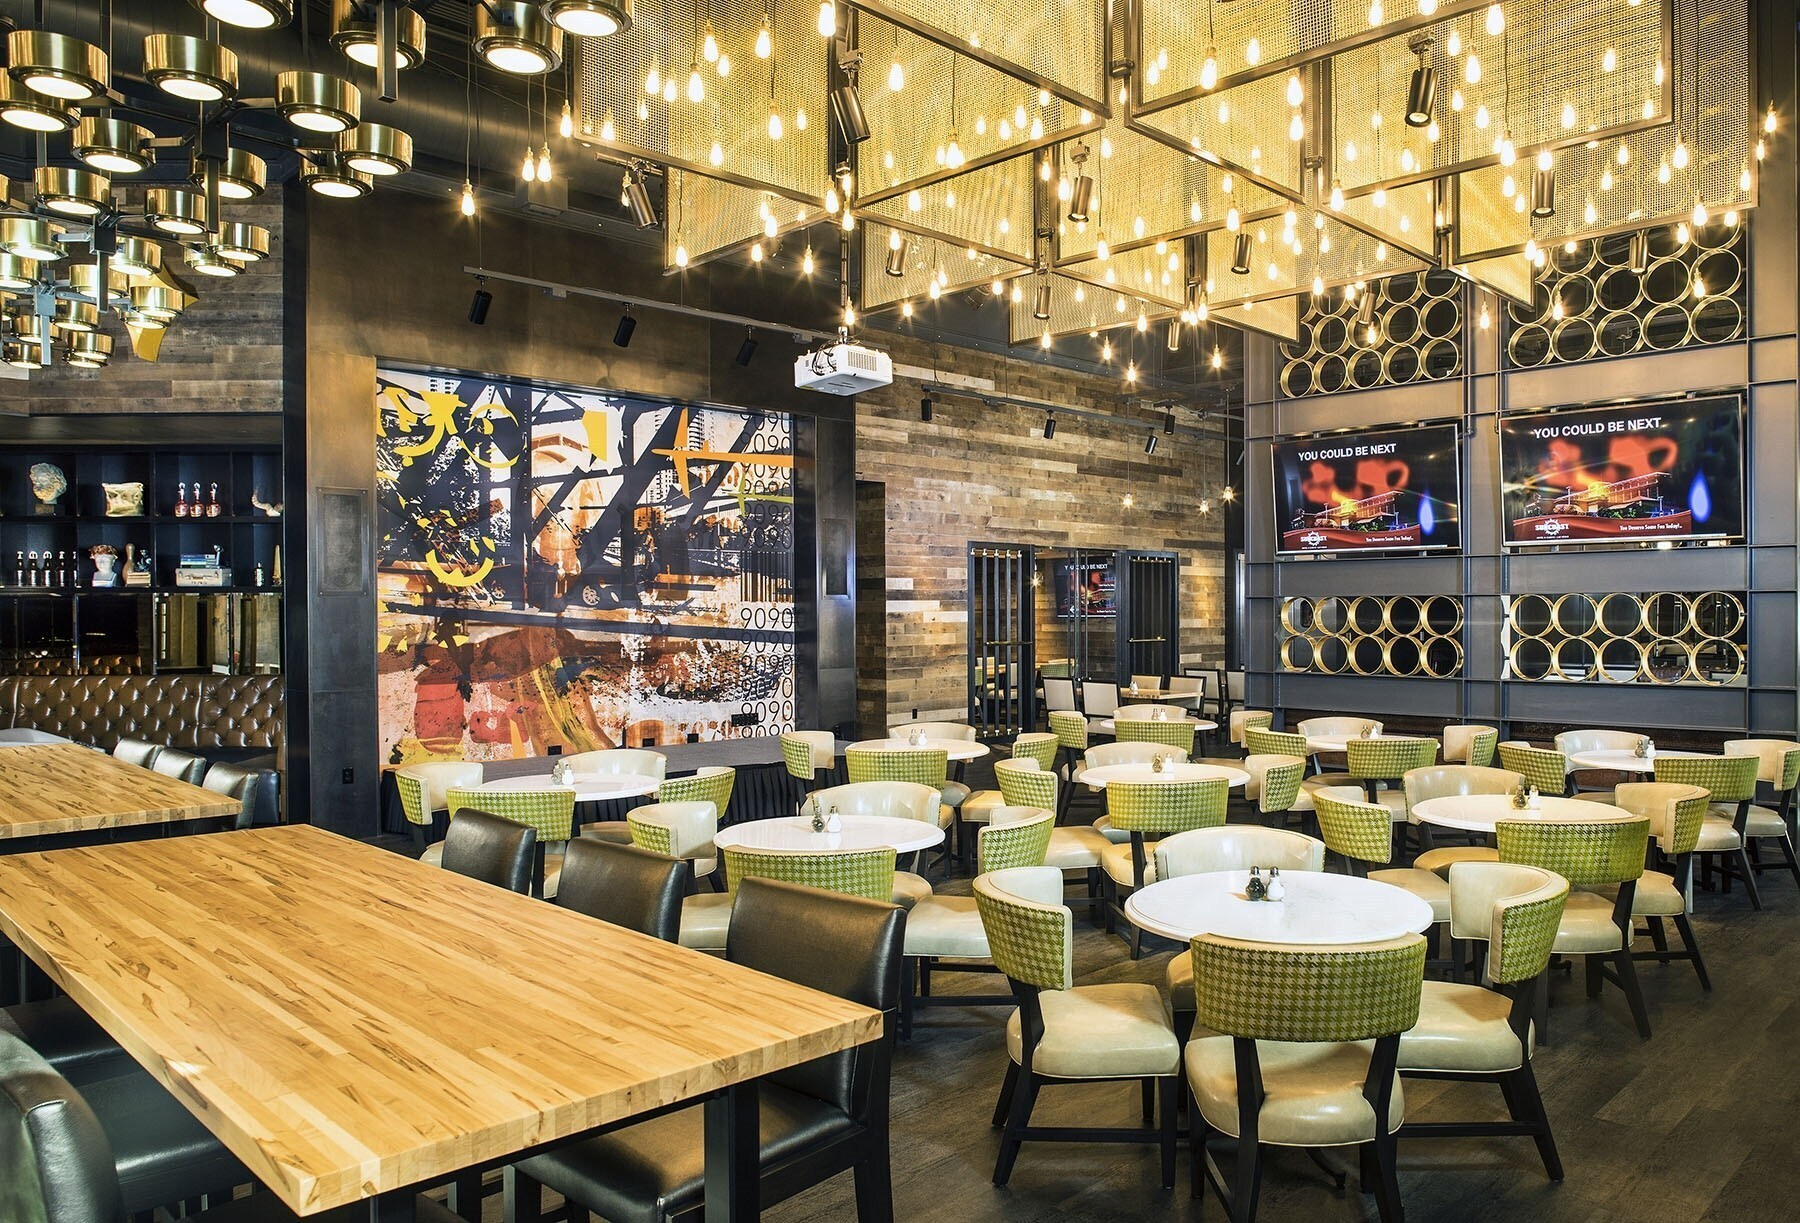 Featured in the 90-Ninteys Bar and Grill at the Suncoat Hotel and Casino are Butcher Block Tables in Ambrosia Maple by Wood Statements. Wood Statements custom butcher block tables offer a variety of options including matte or satin FDA approved finish that is heat, scratch, and moisture resistant.